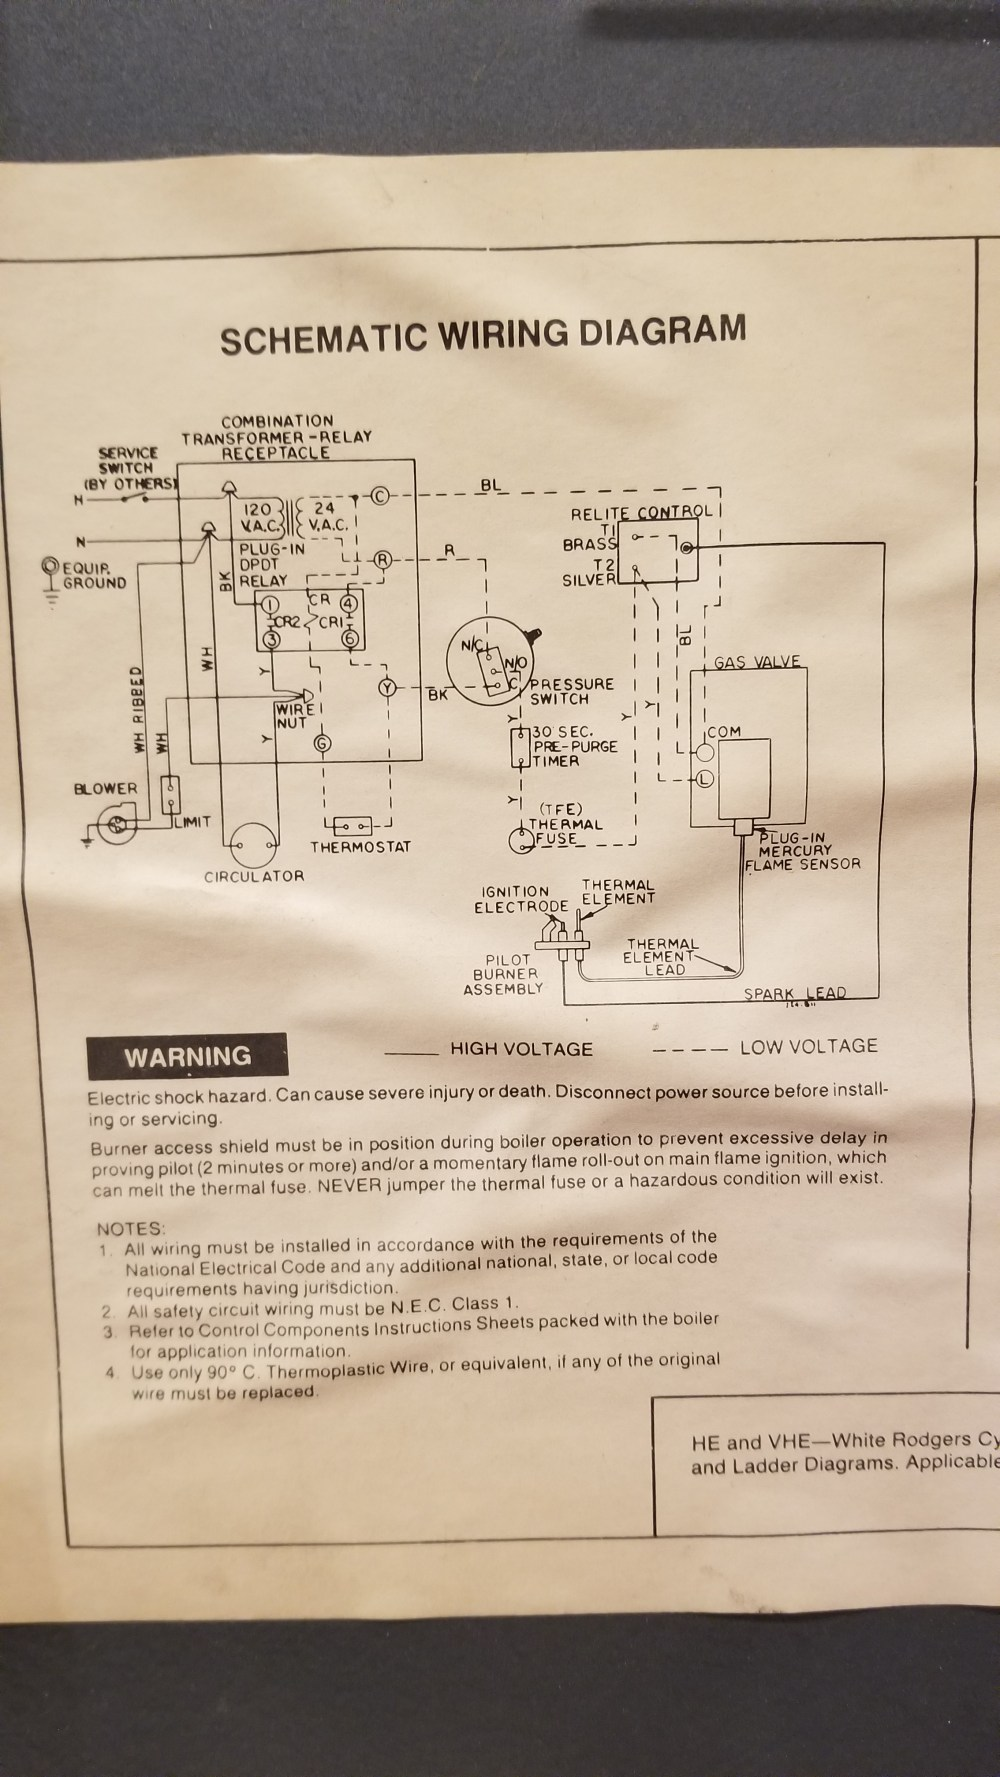 medium resolution of and this is one of the wiring diagrams from honeywell that seemed to match what i am trying to do eliminating the third zone valve and thermostat